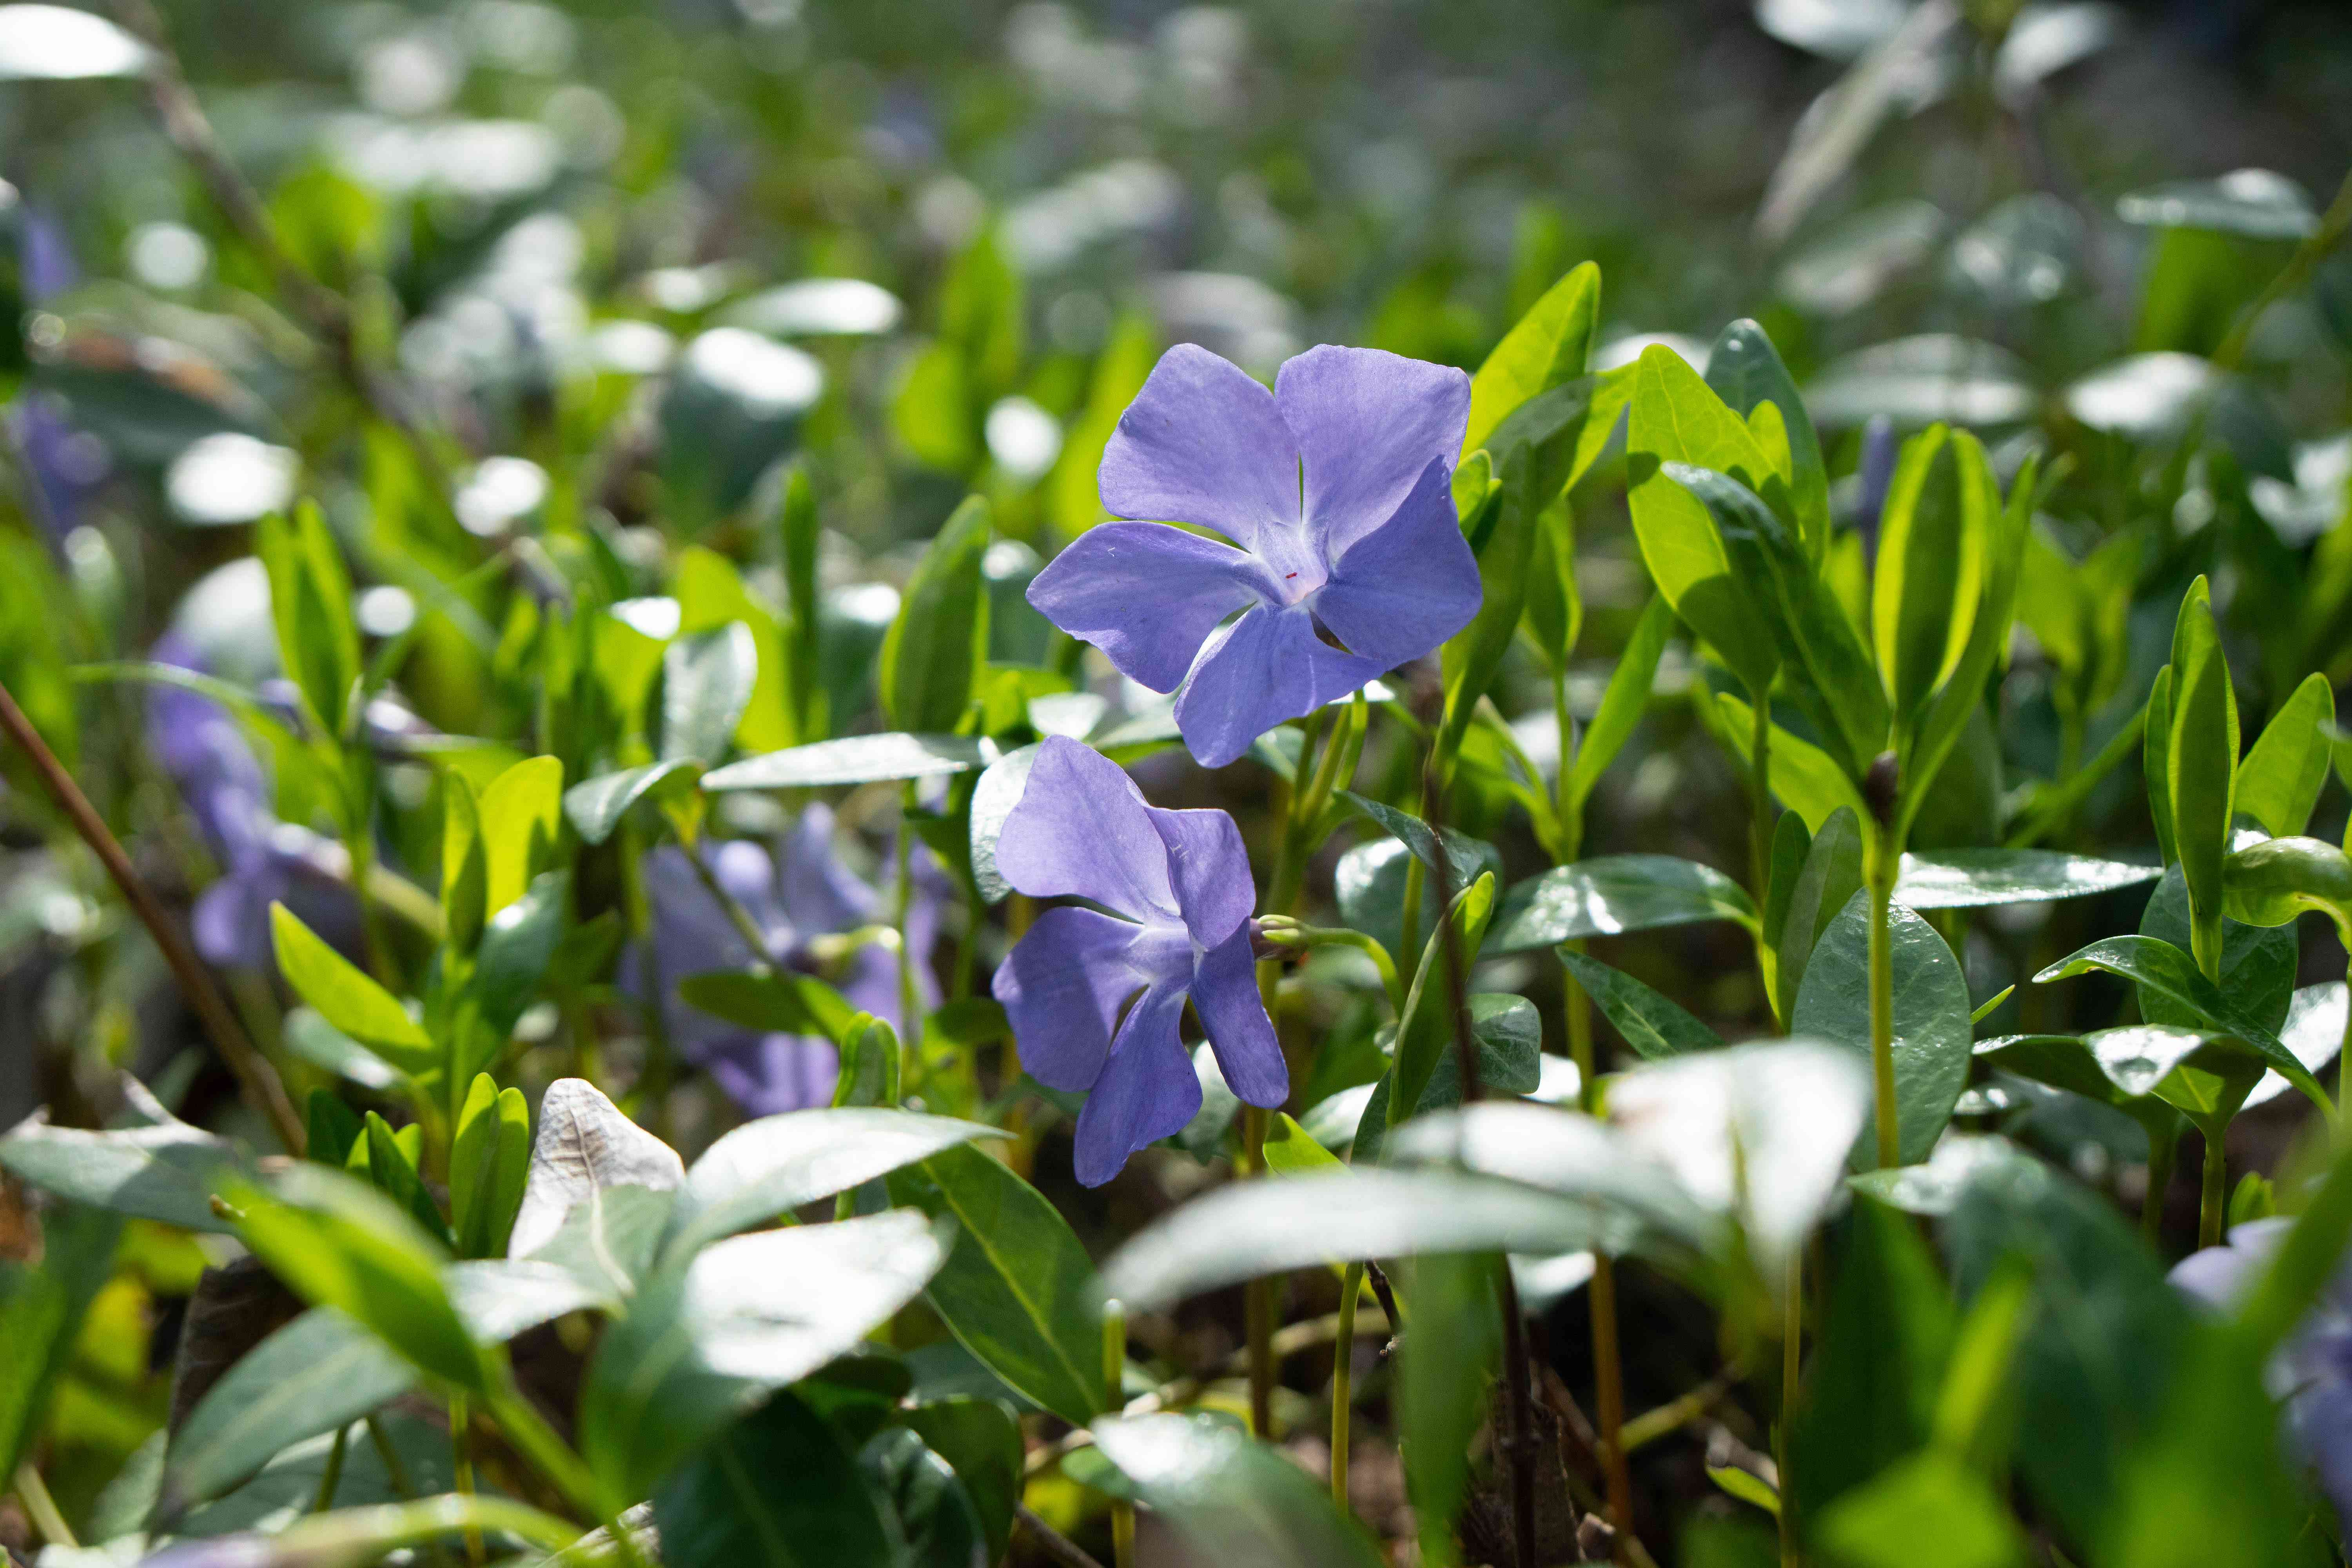 close shot of purple morning glory flowers in green grass